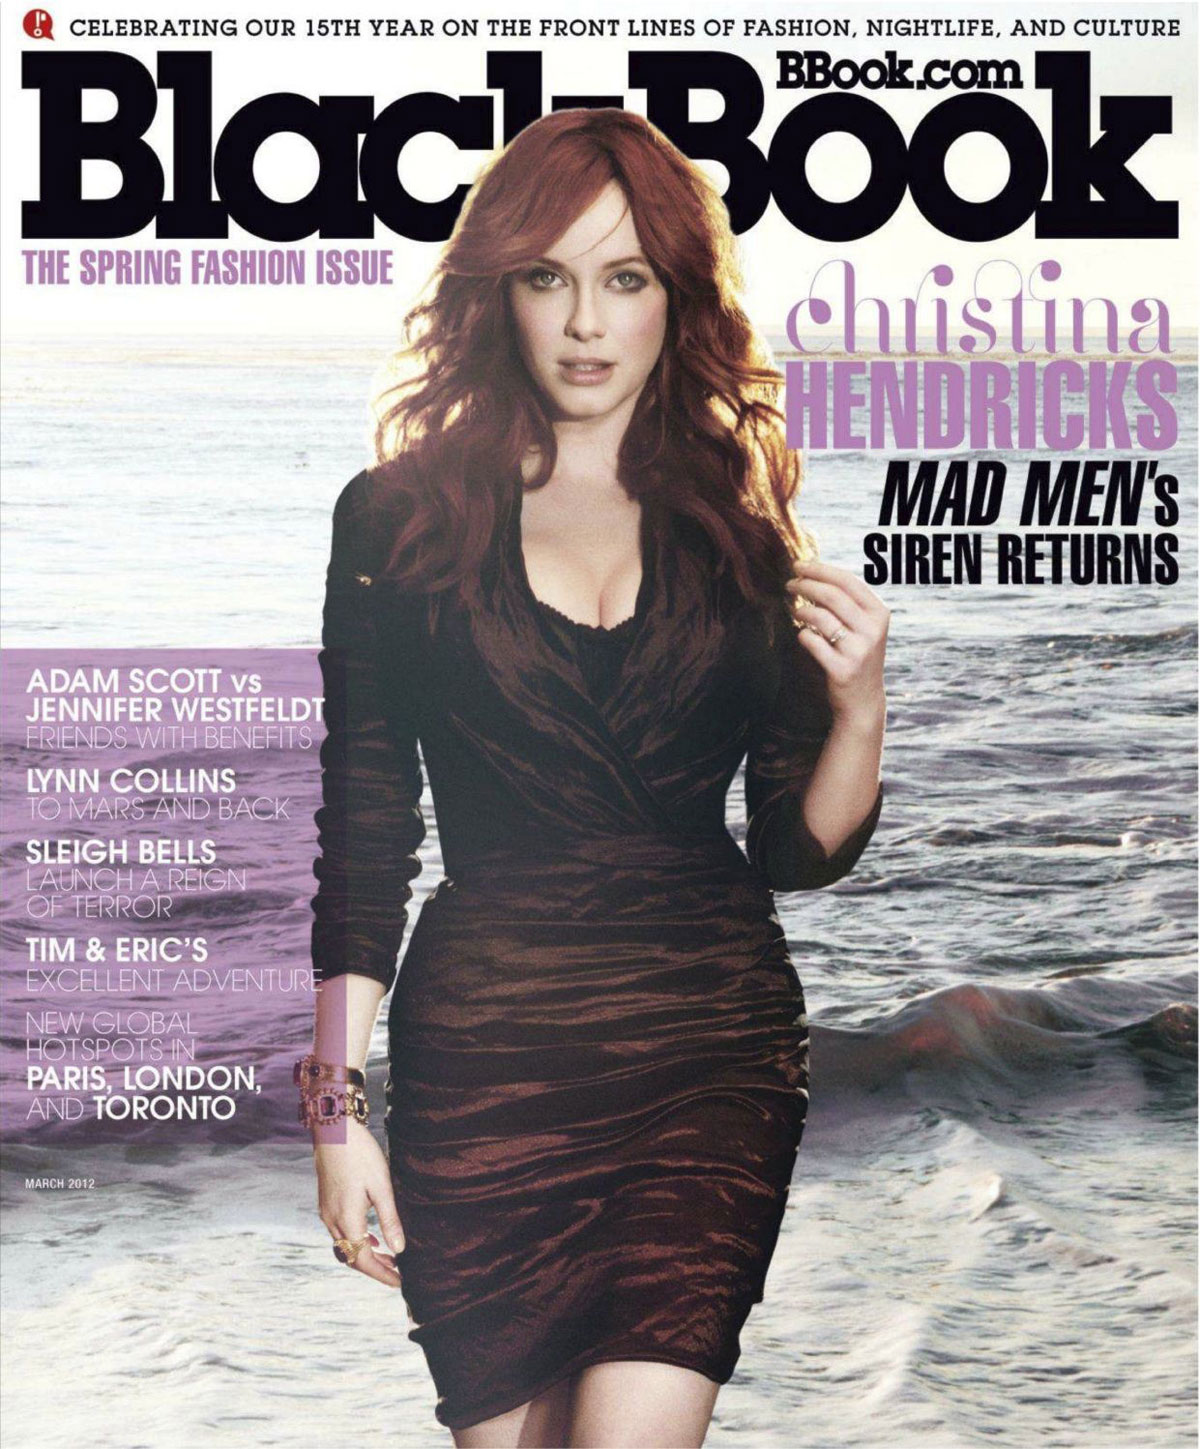 http://2.bp.blogspot.com/-qaMJVXfPG7o/T1t4Yq0m_lI/AAAAAAAAIAA/iBGAJIxSWbk/s1600/Christina-Hendricks-in-BlackBook-Magazine-March-2012-Issue-6.jpg